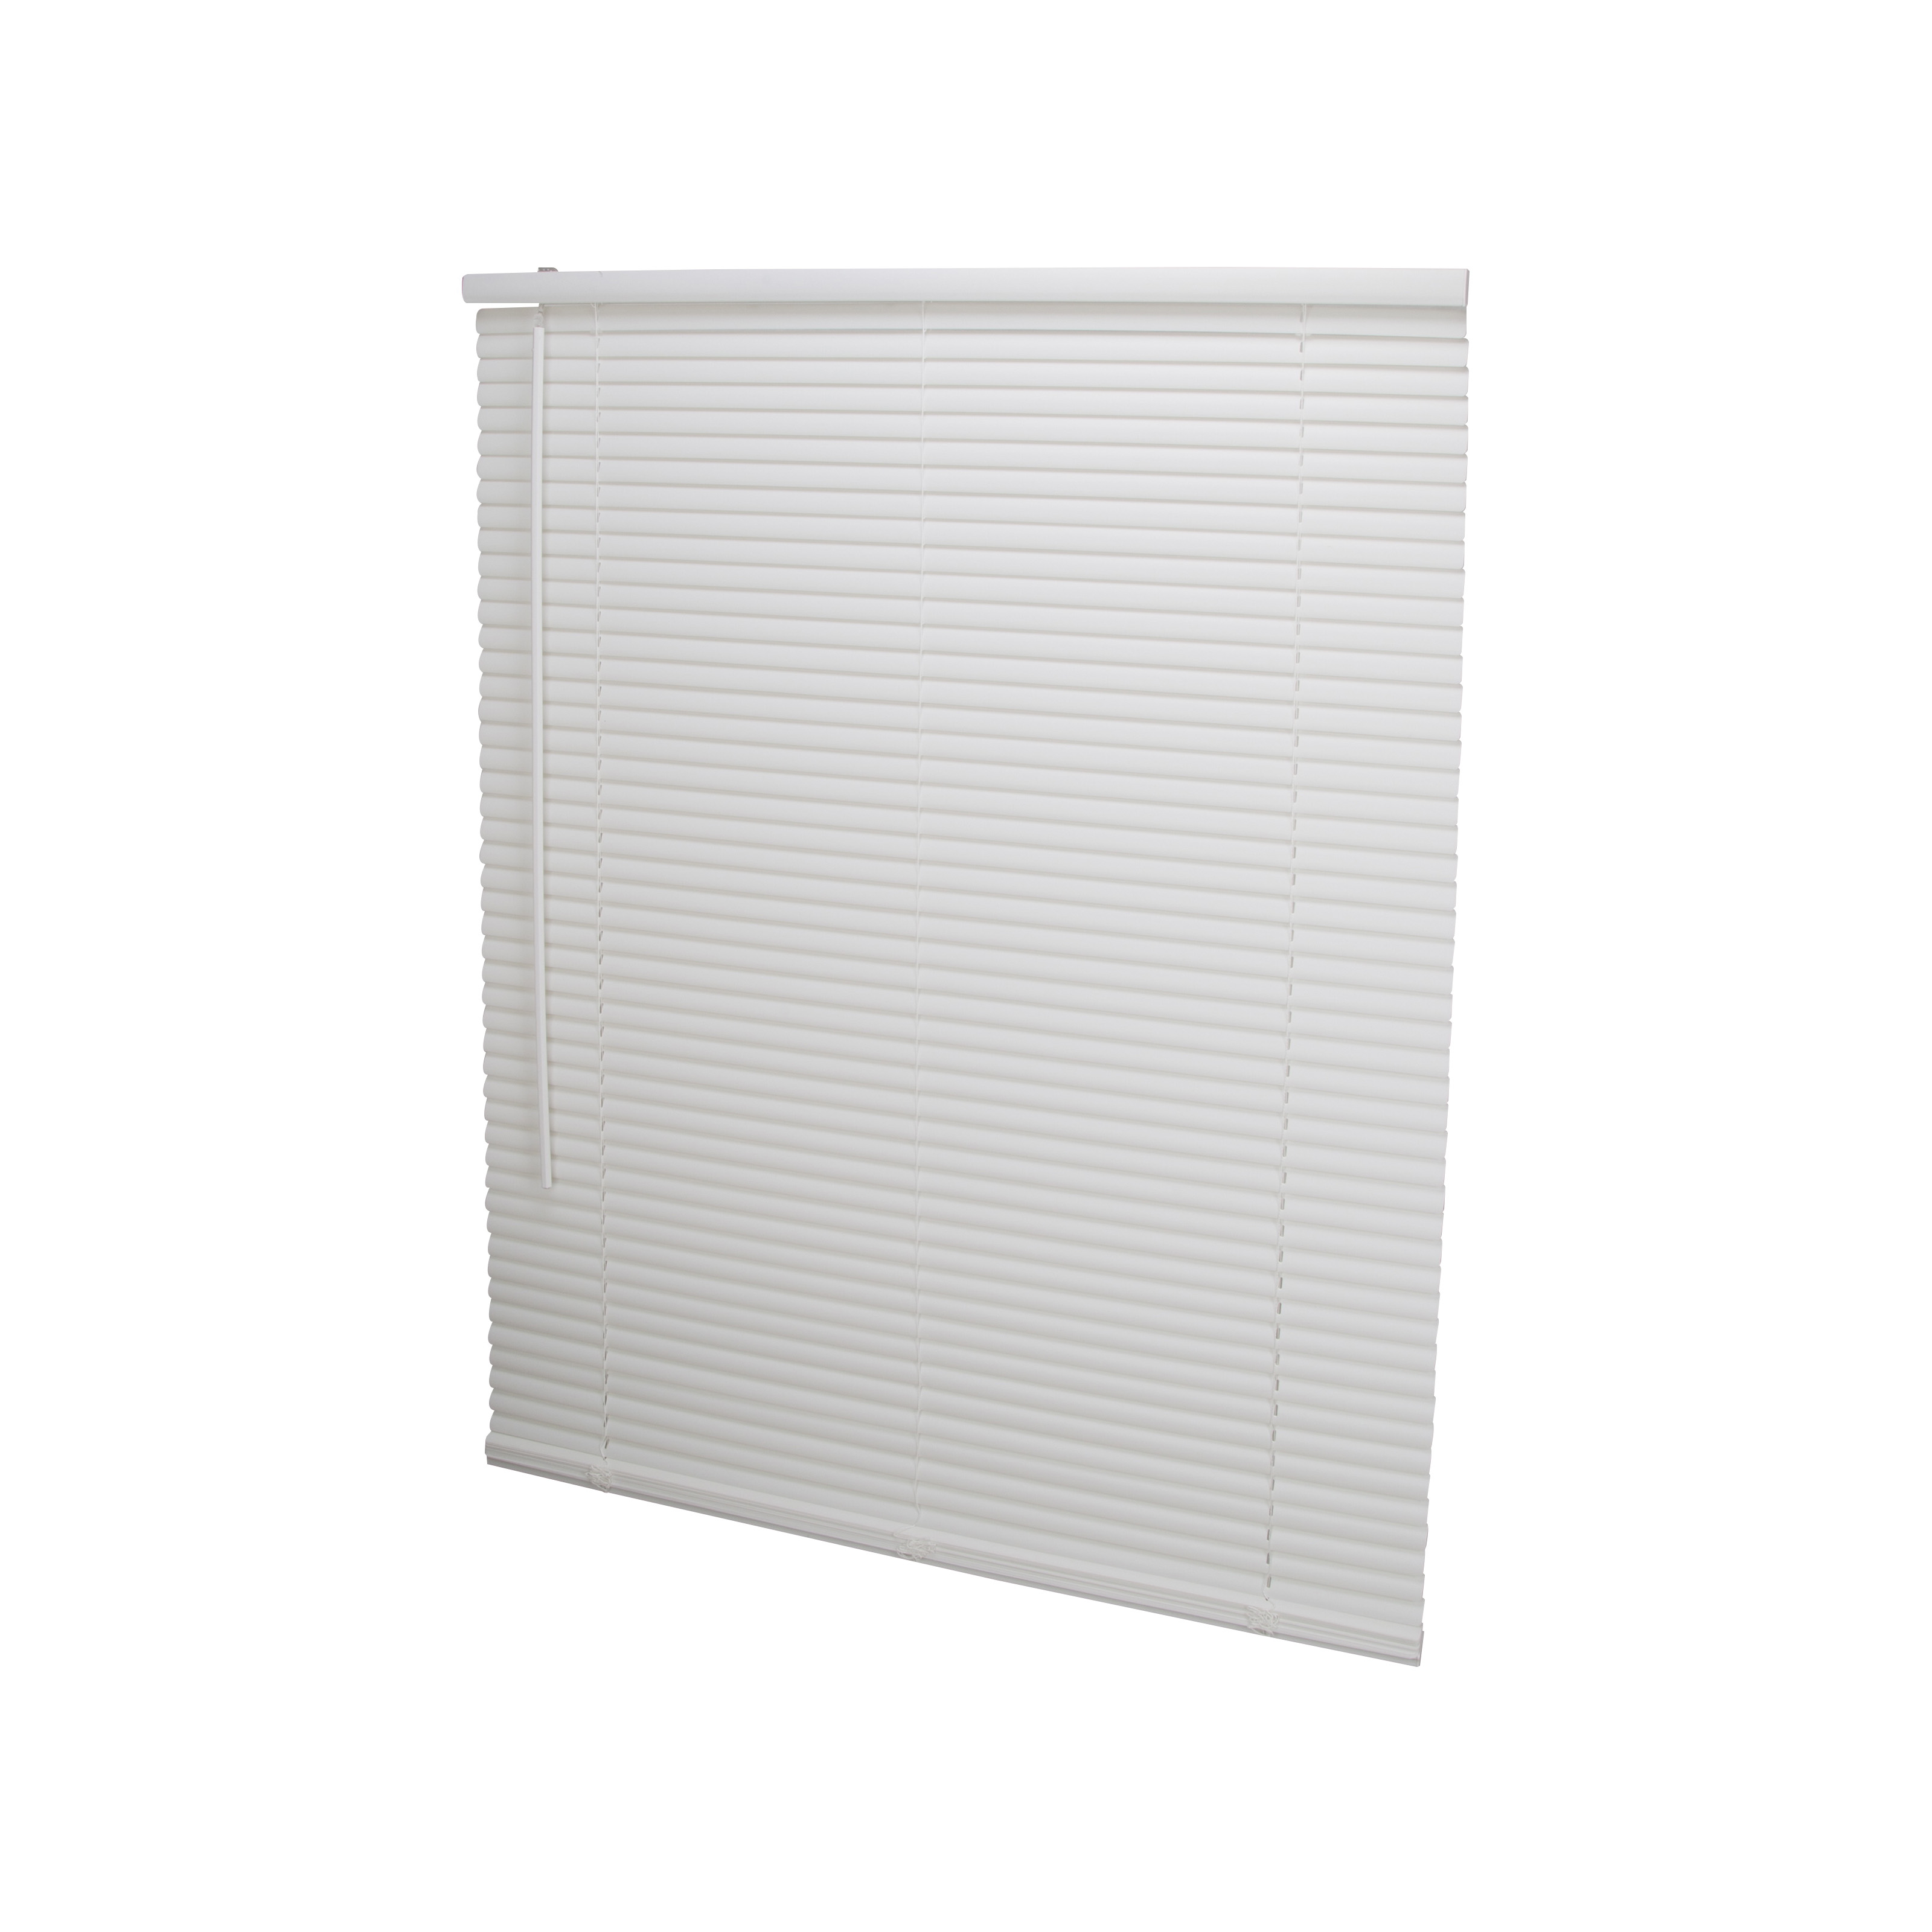 Picture of Simple Spaces PVCMB-11A Cordless Mini Blind, 64 in L, 36 in W, Vinyl, White